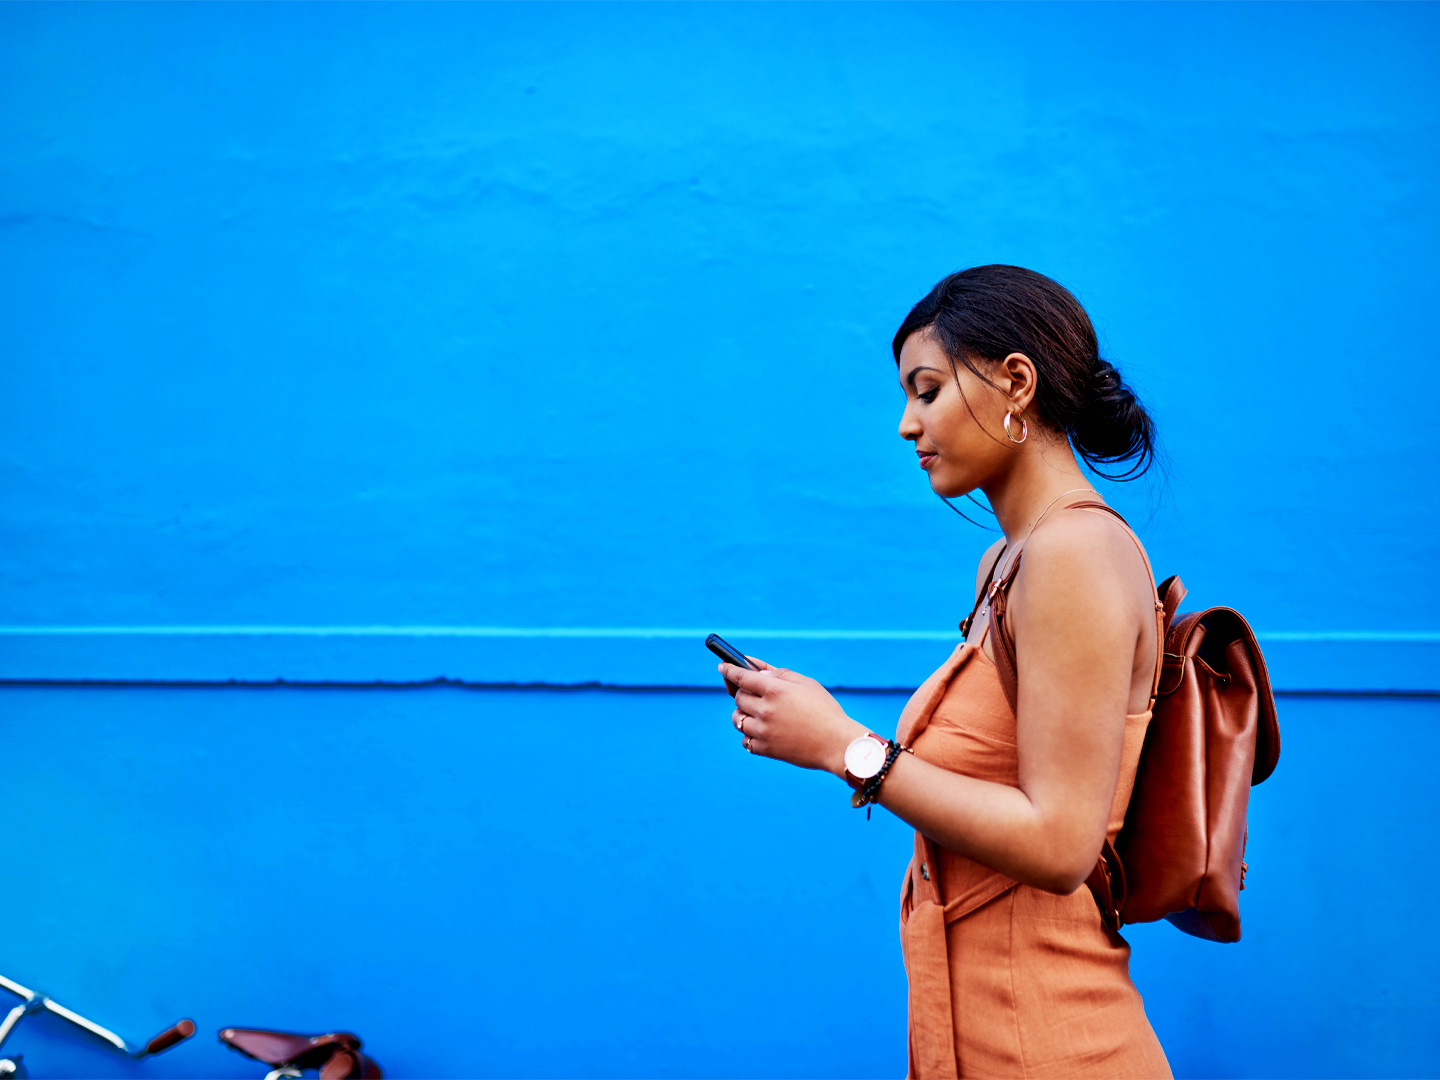 Photo of a woman using a mobile phone